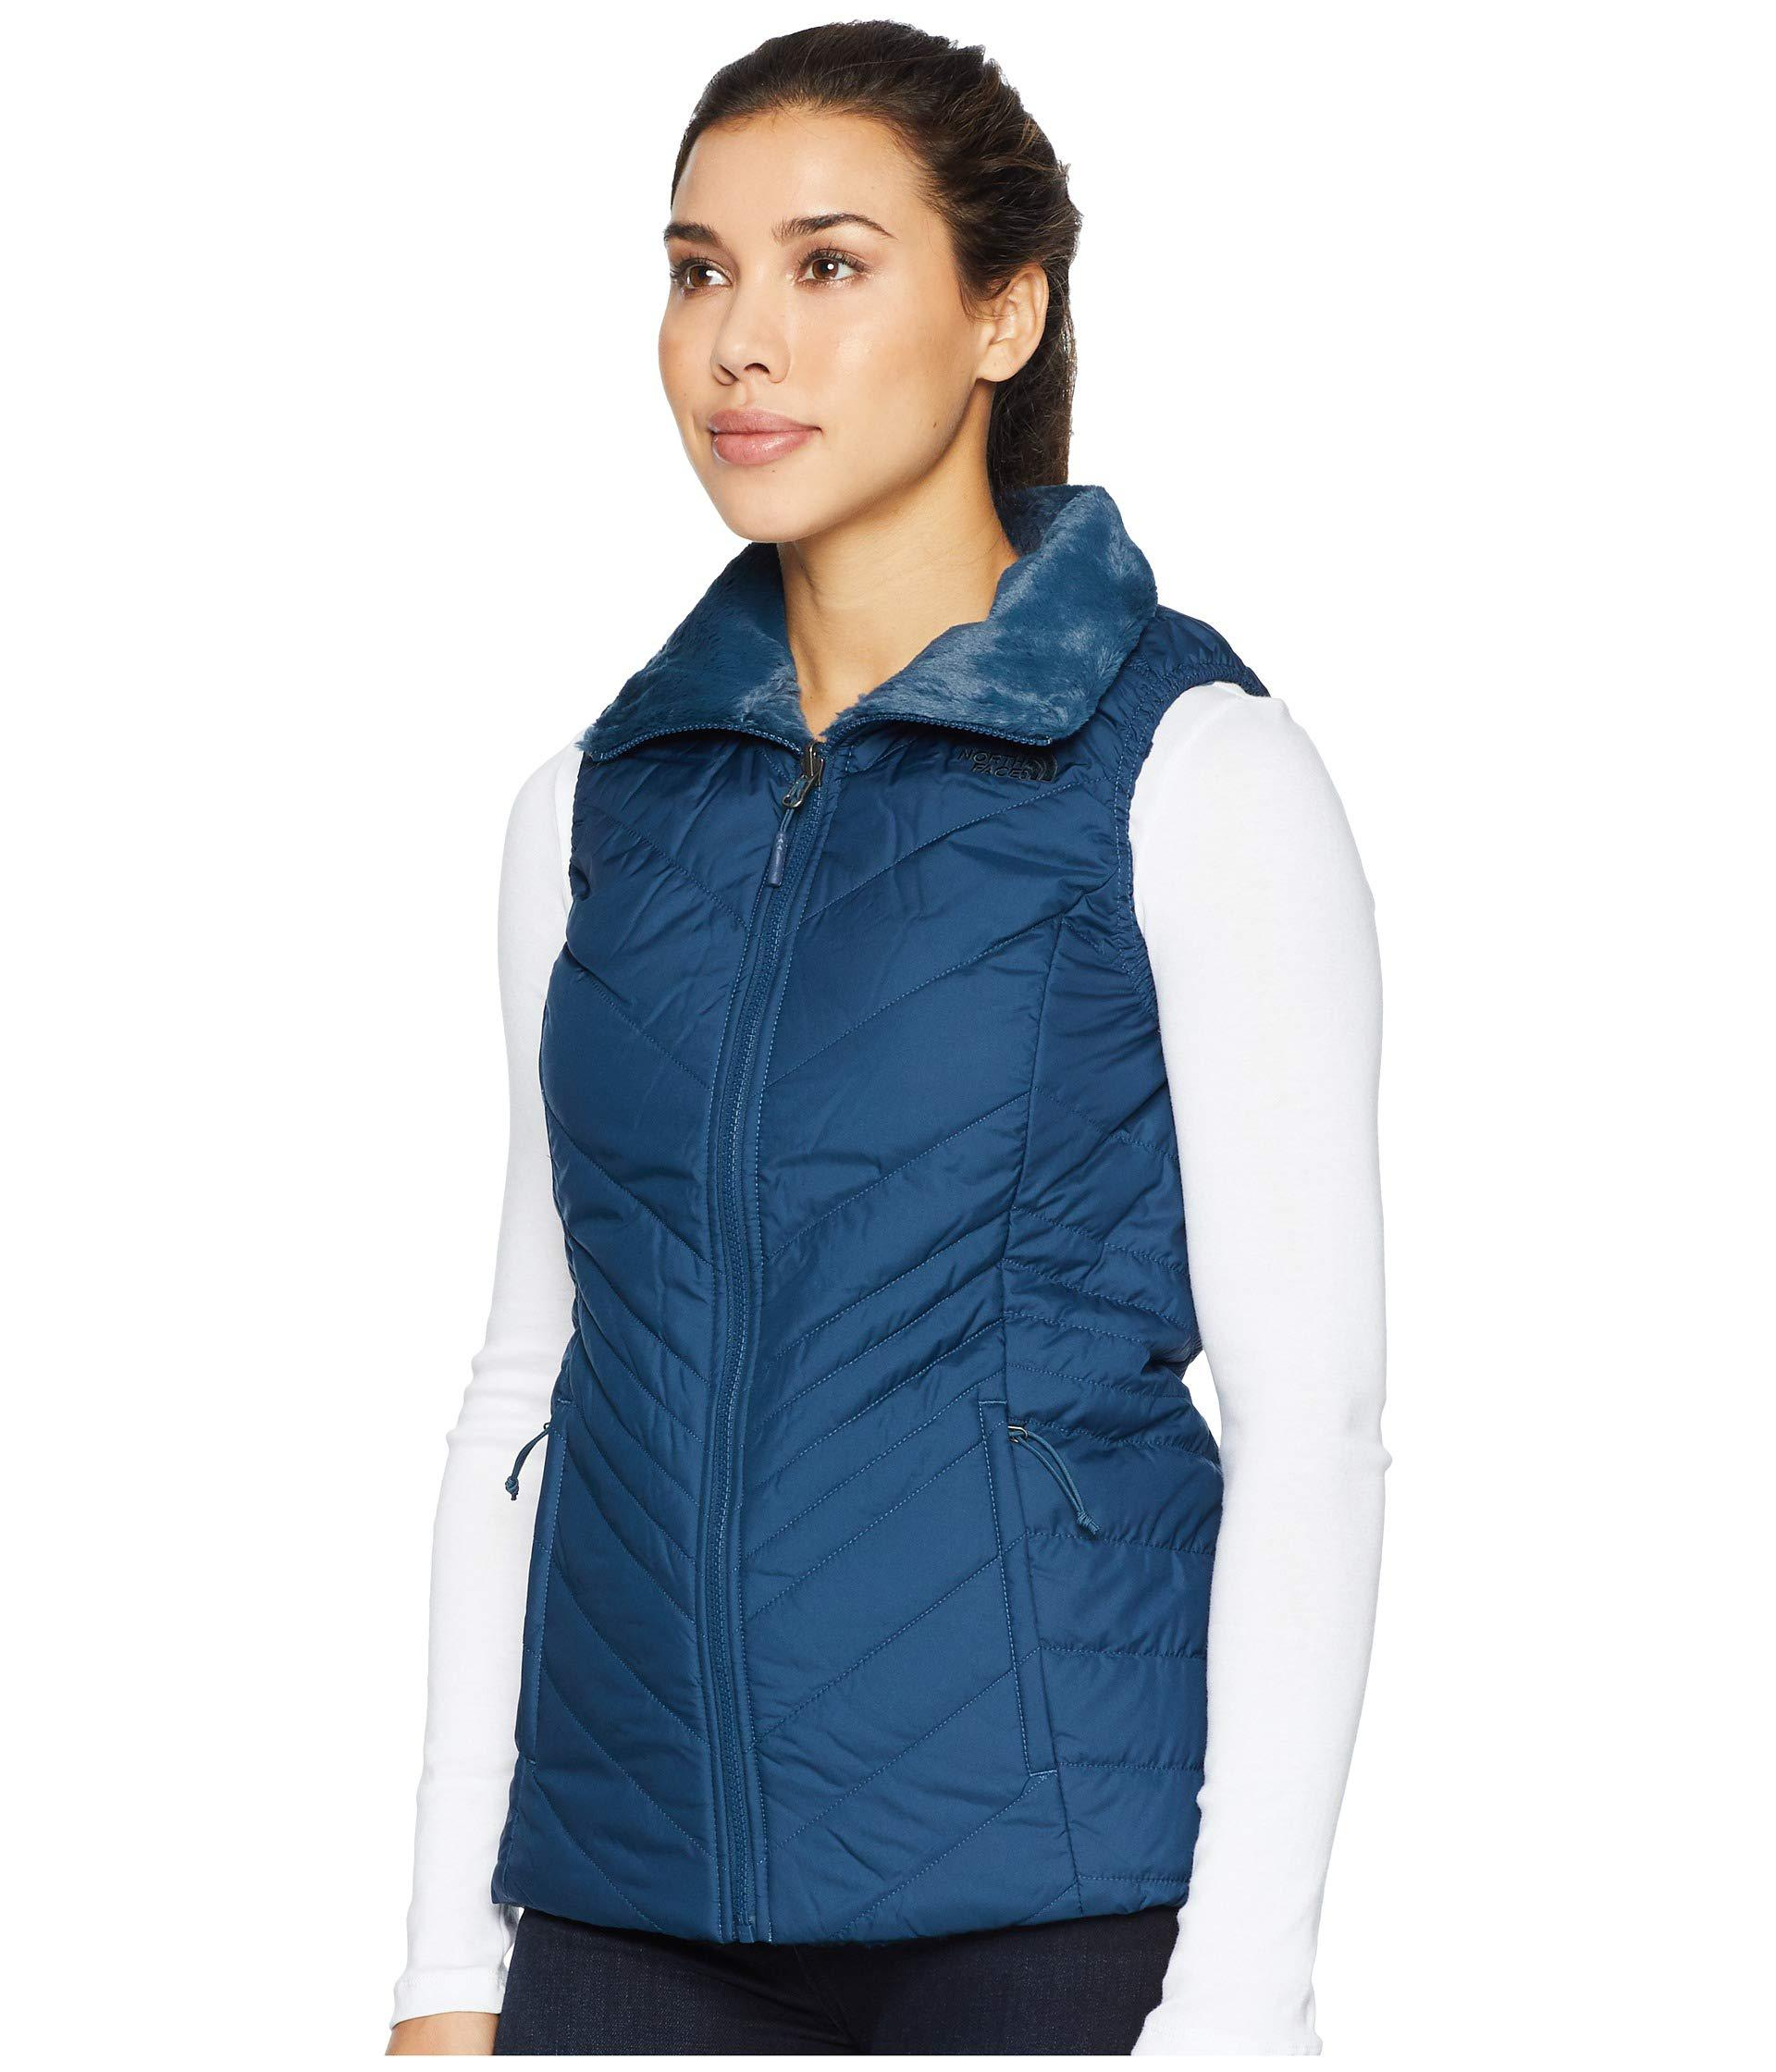 Lyst - The North Face Mossbud Insulated Reversible Vest (tnf Black) Women s  Vest in Blue 4c5811759